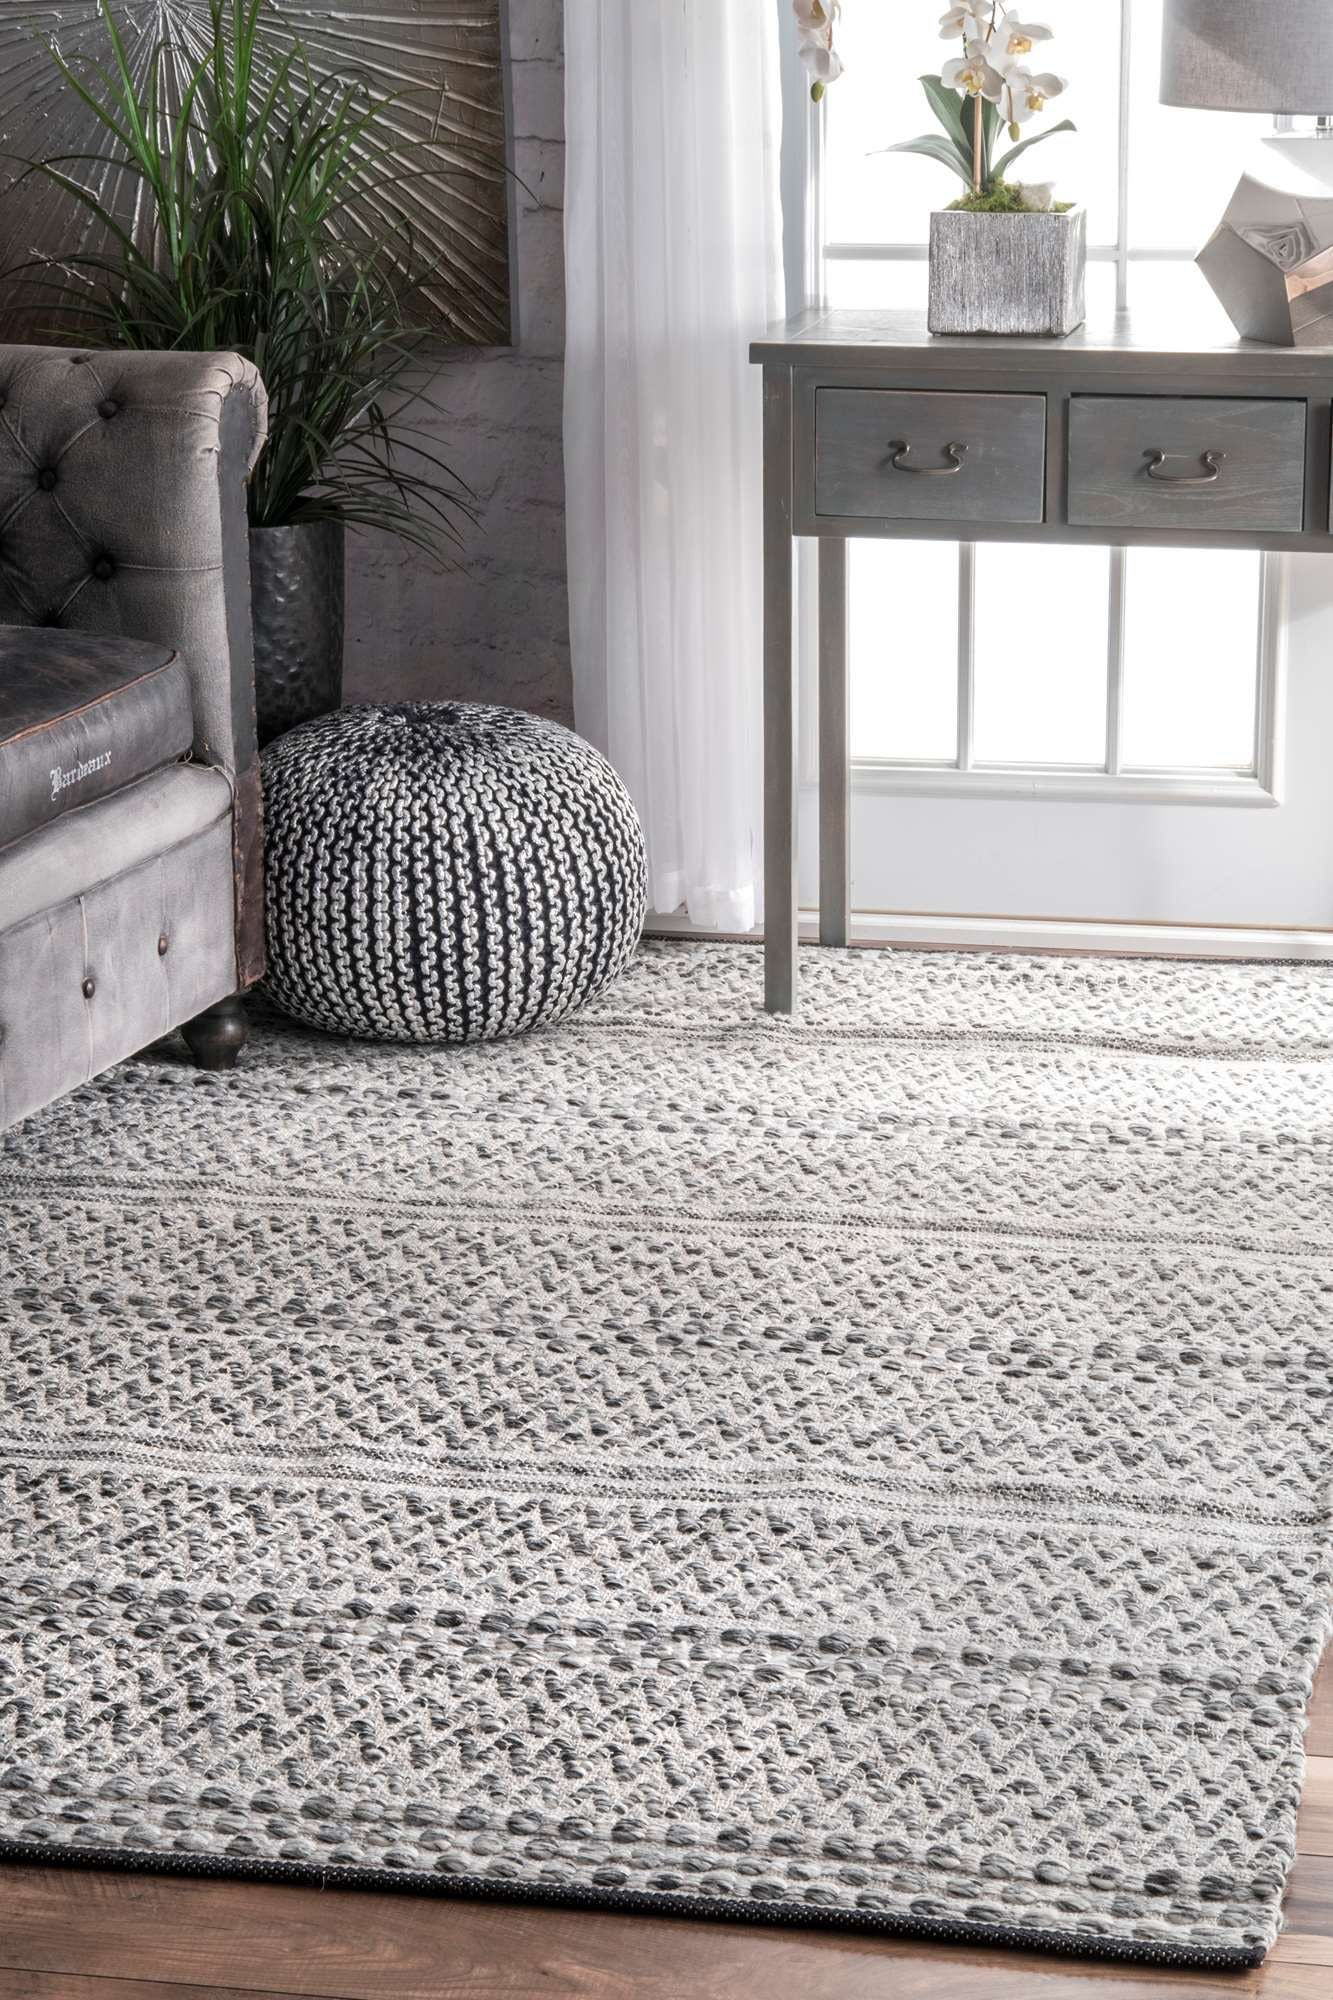 The Prettiest Outdoor Rugs You Ll Actually Want To Use Indoors